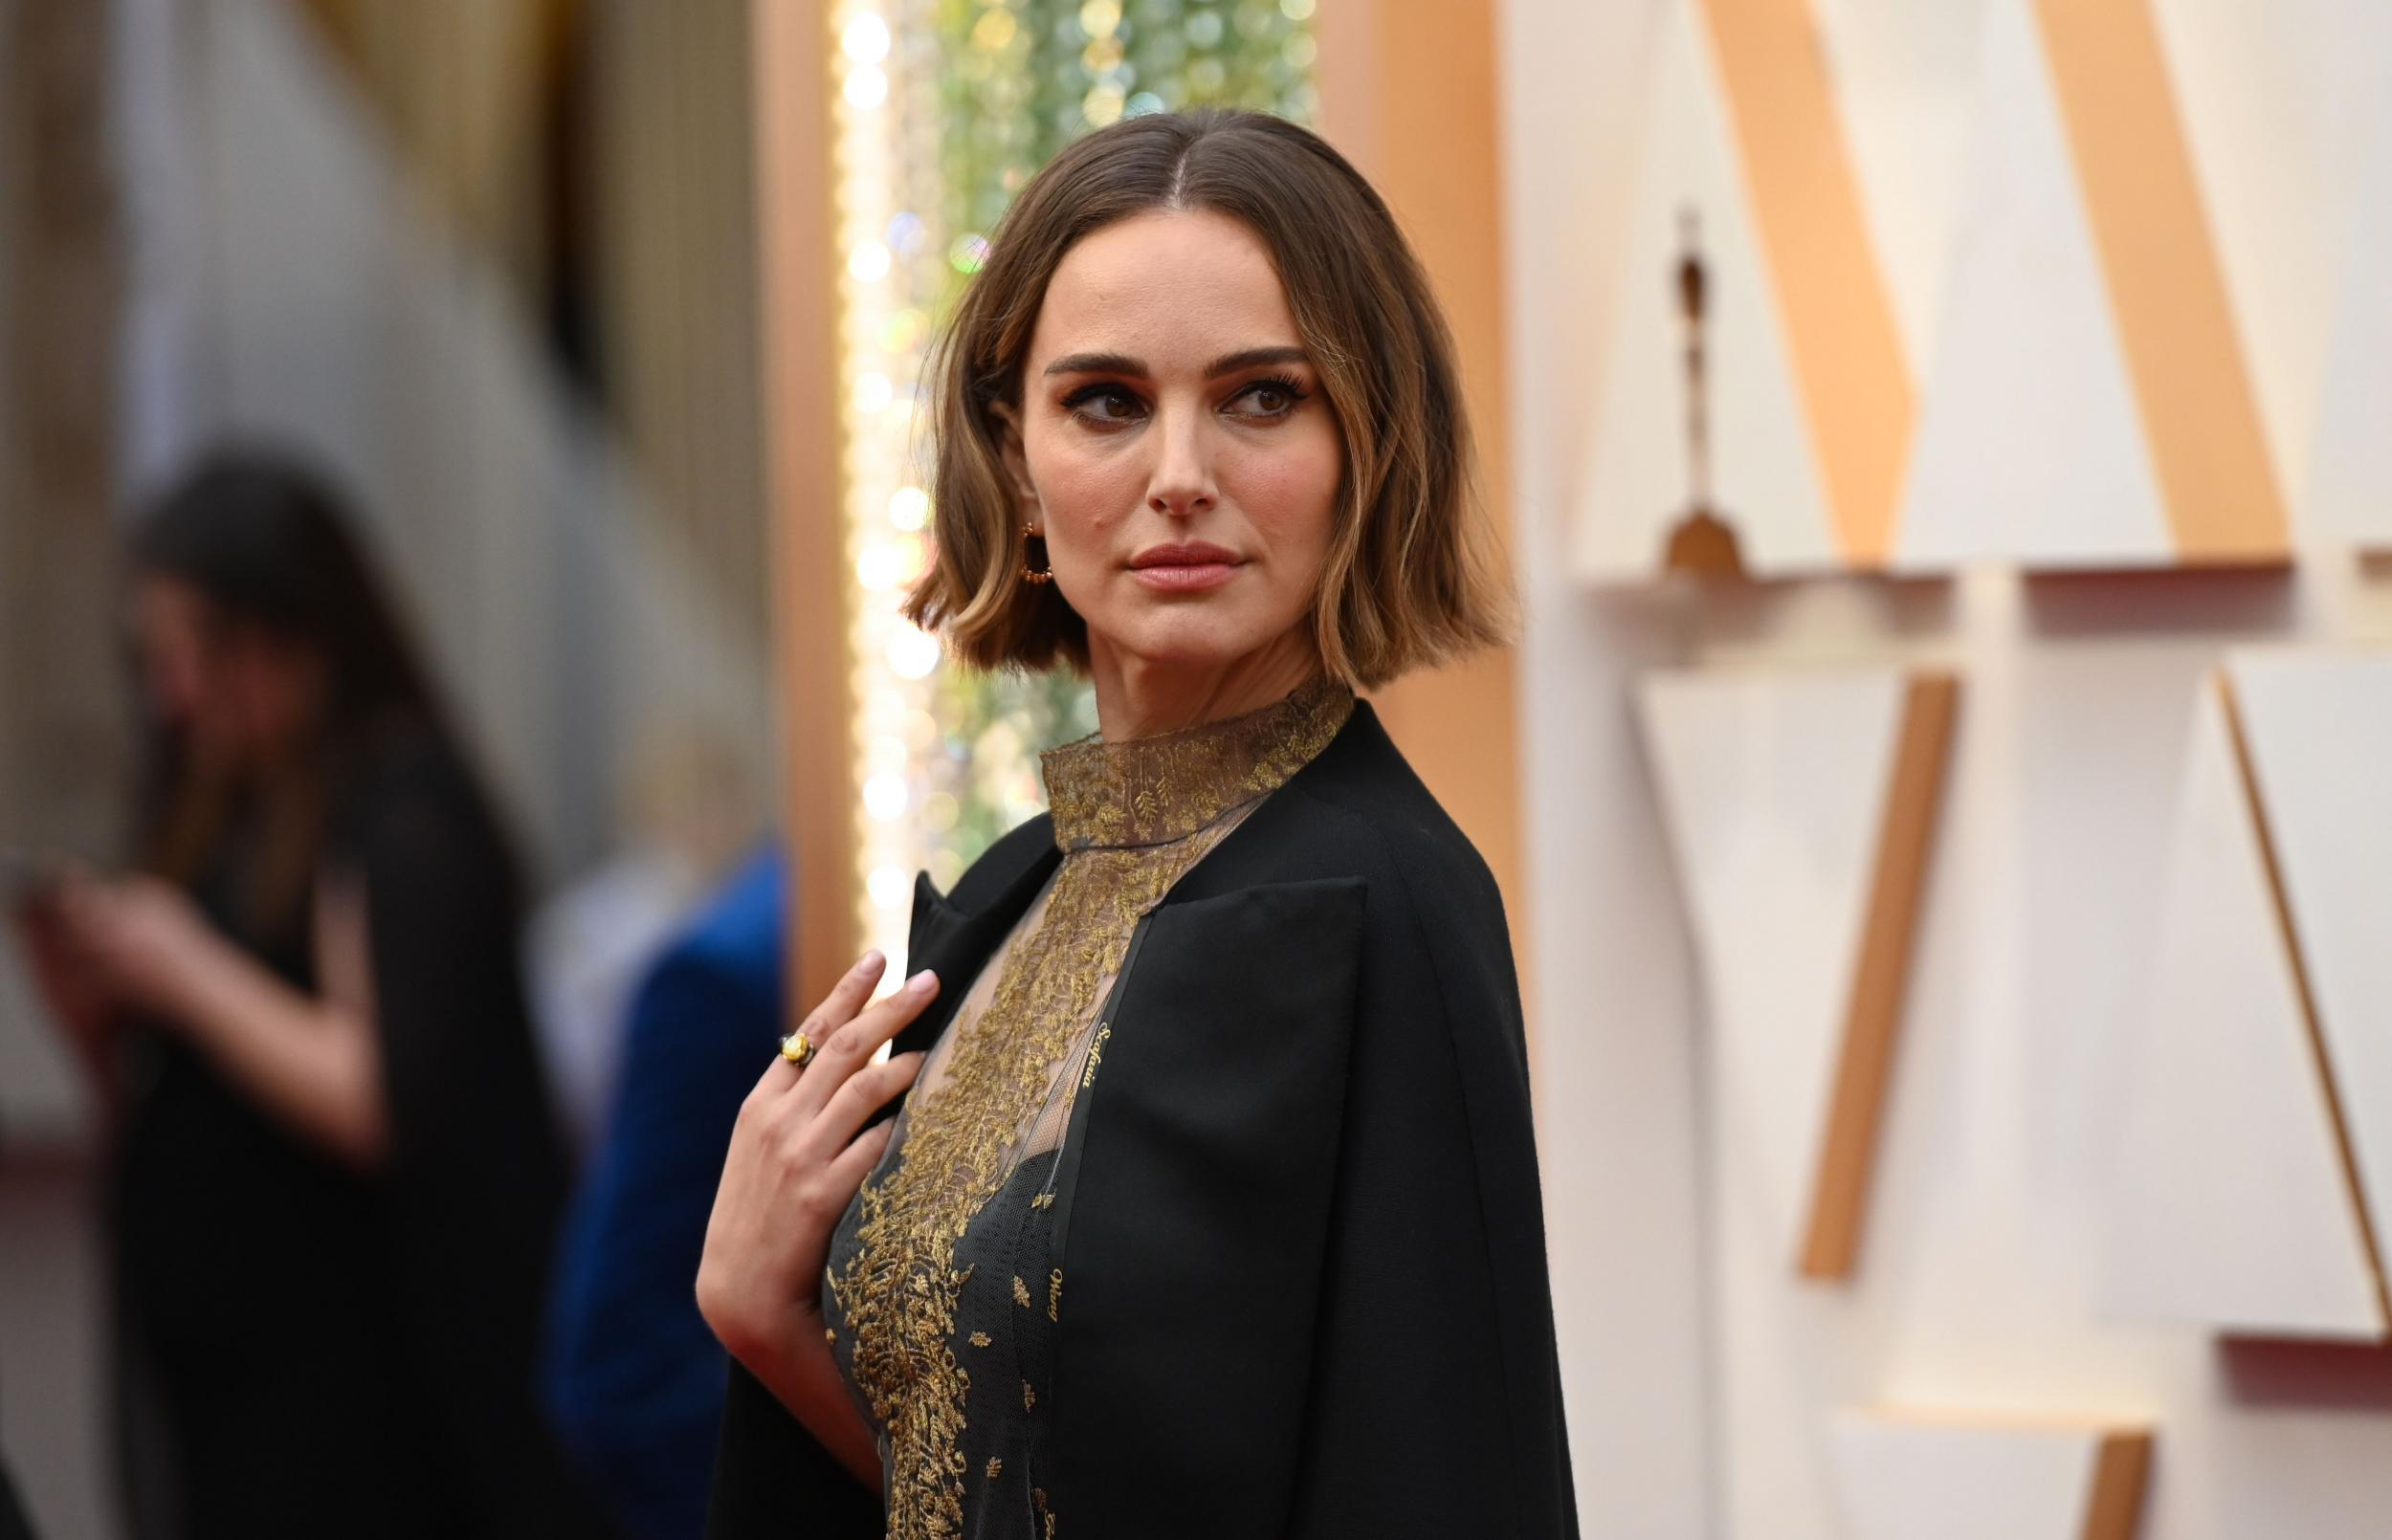 Rose McGowan attacks Natalie Portman's pro-female director Oscars outfit: 'Walk the walk'